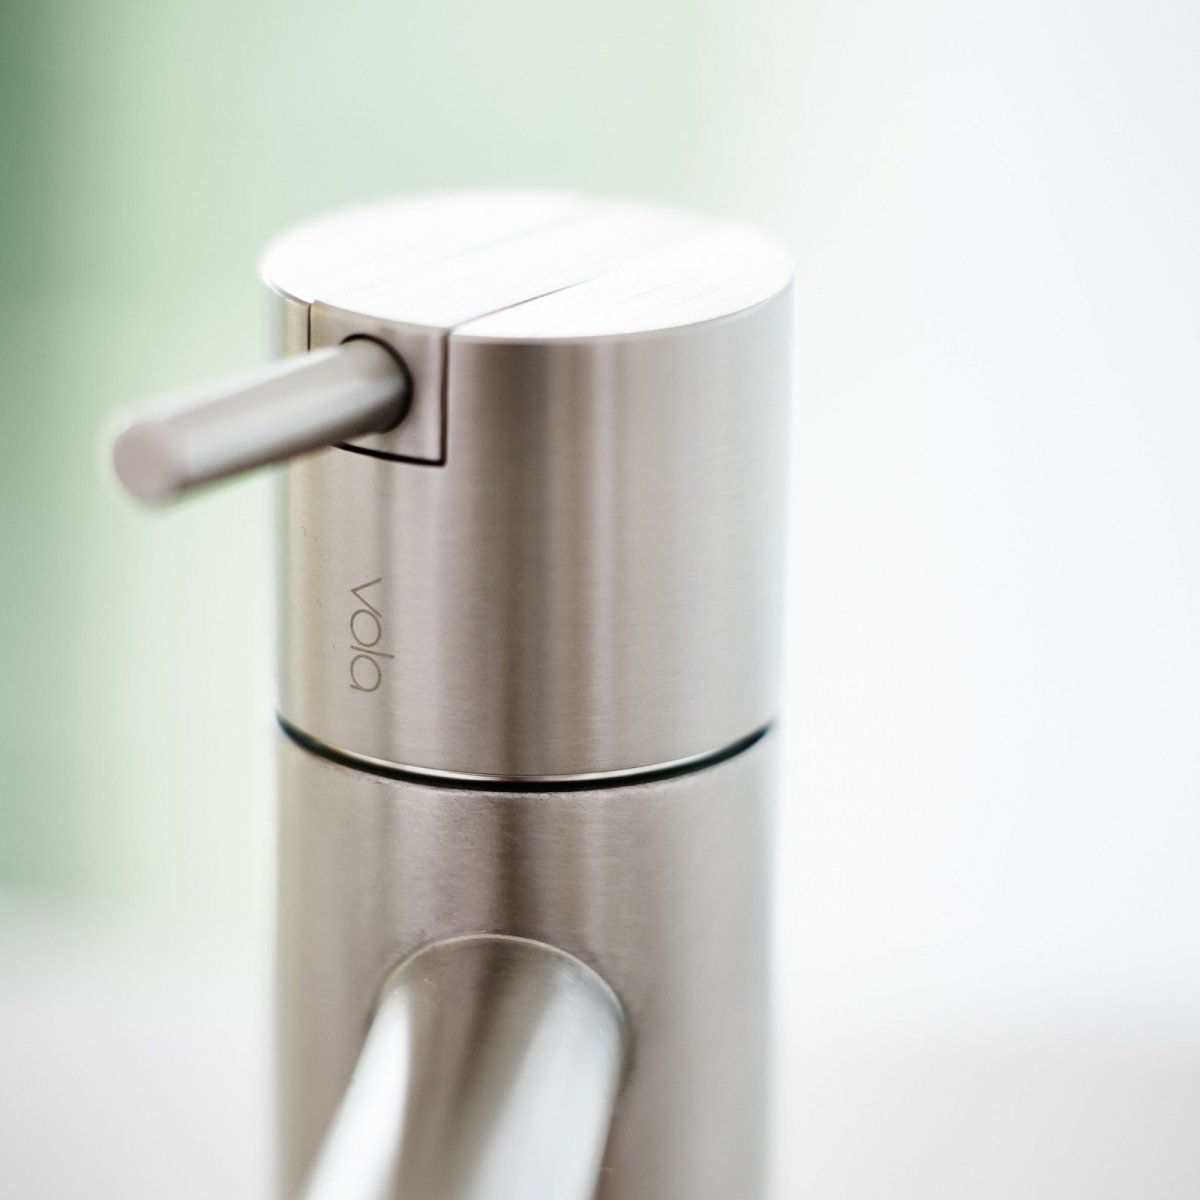 Vola HV1 one-handle mixer with ceramic disc technology, detail.